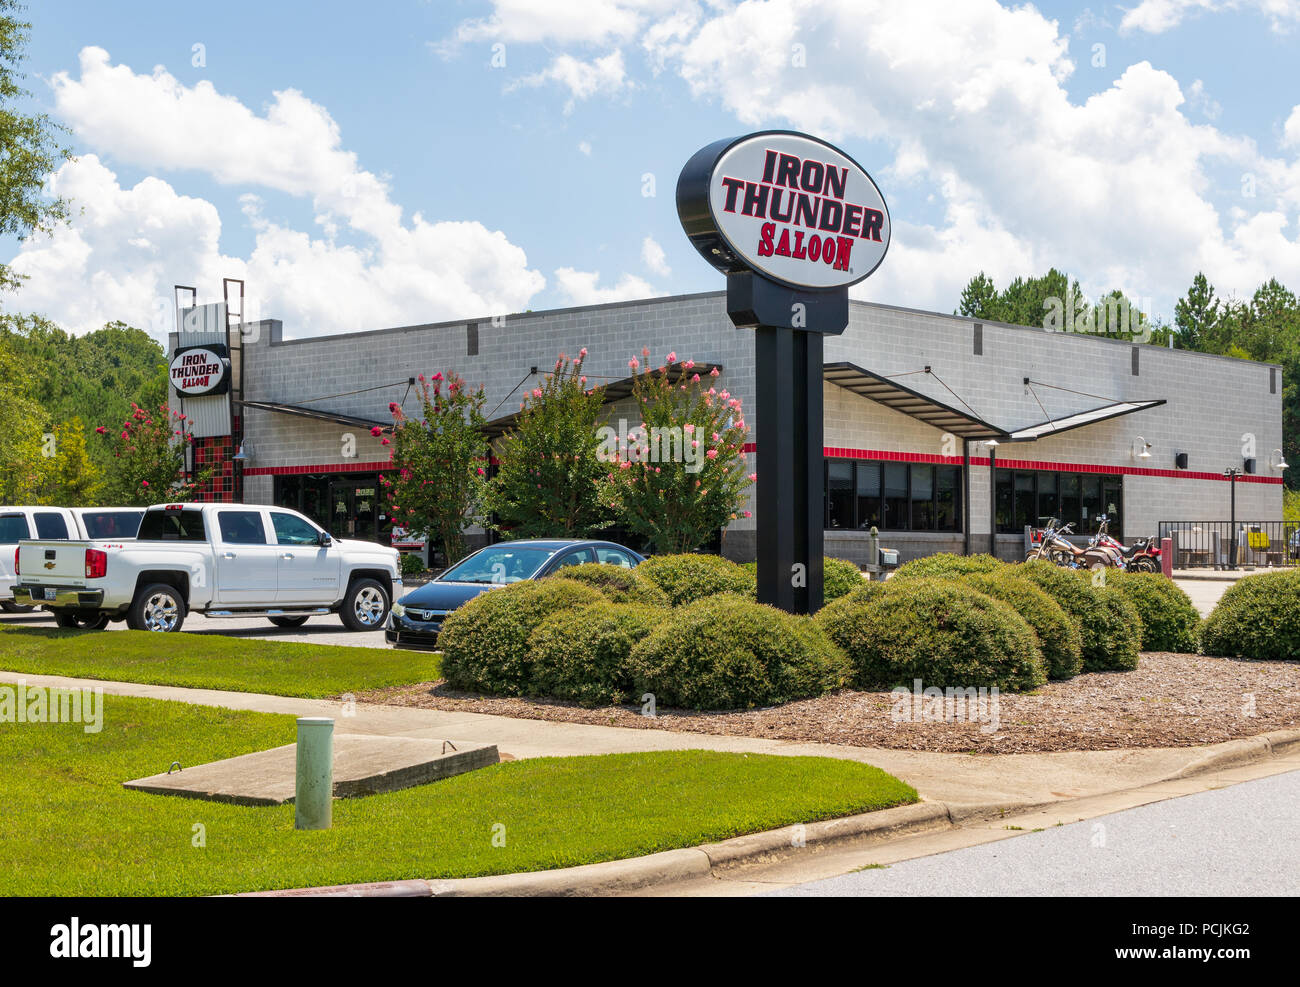 Hickory Nc Usa 26 July 18 This Iron Thunder Saloon Is One Of 4